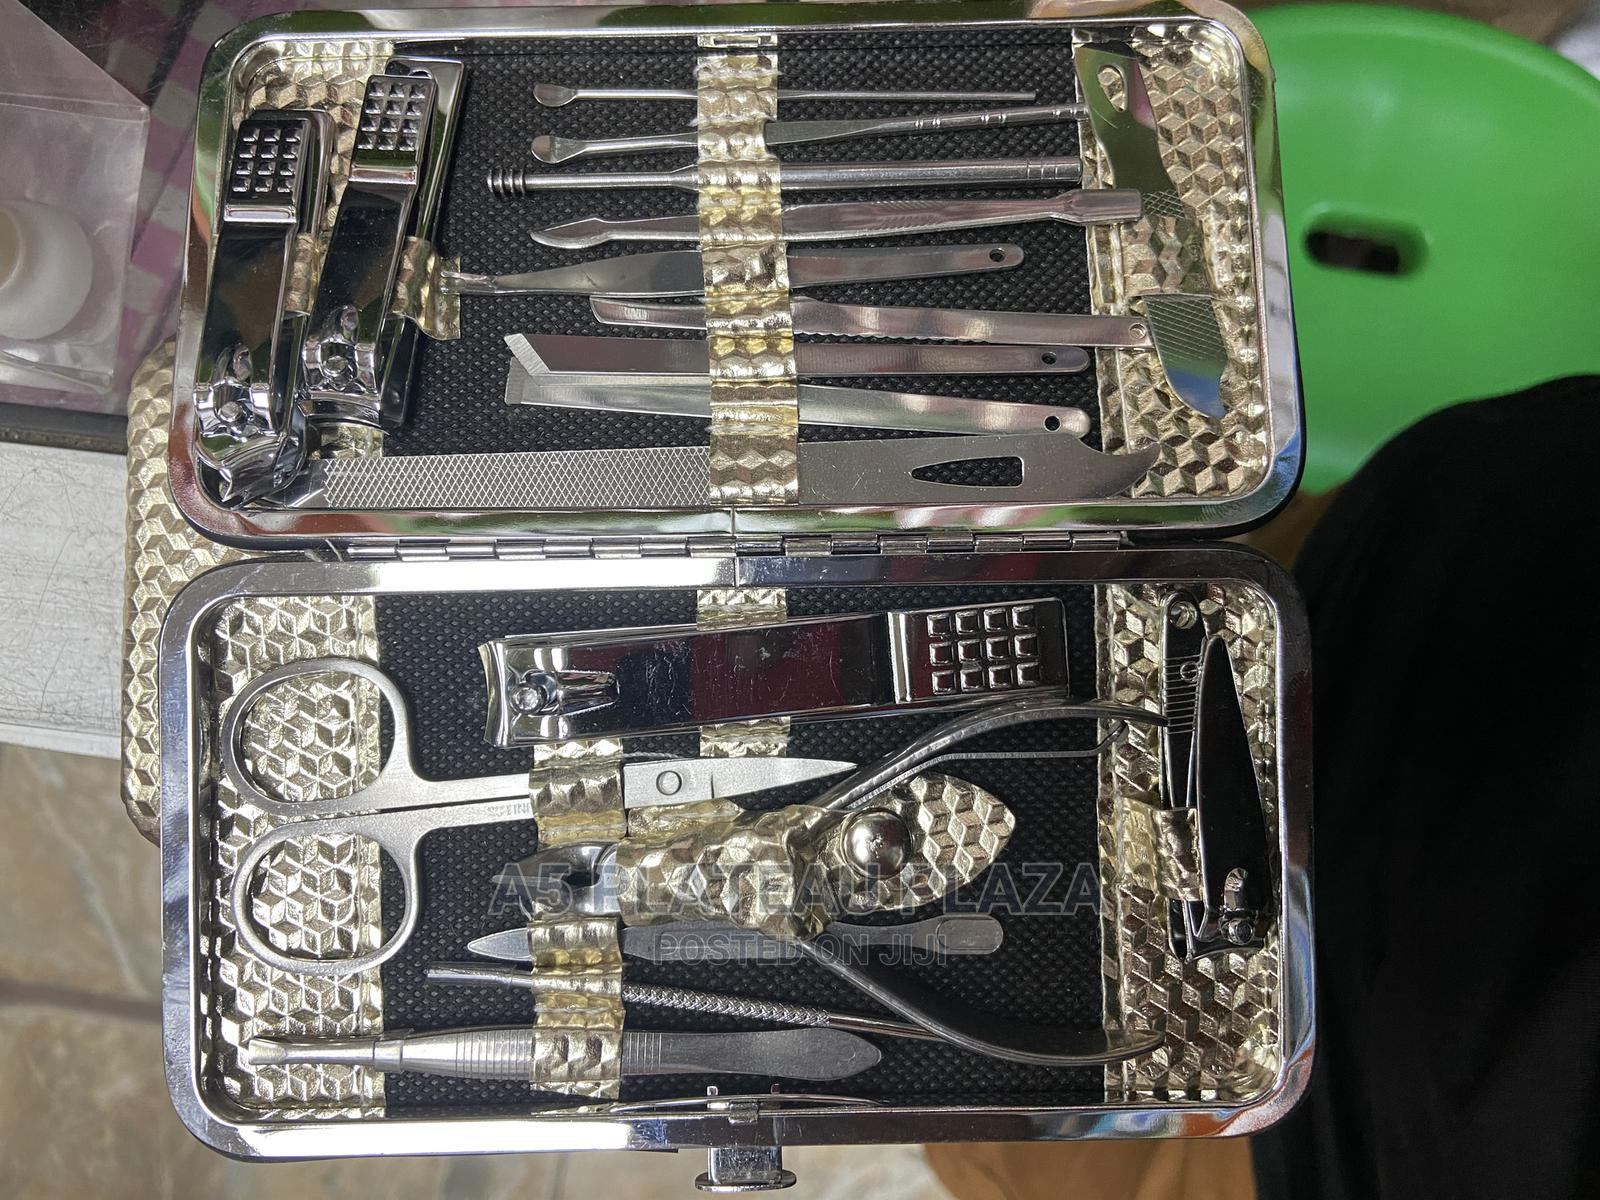 Complete Pedicure and Manicure Kits